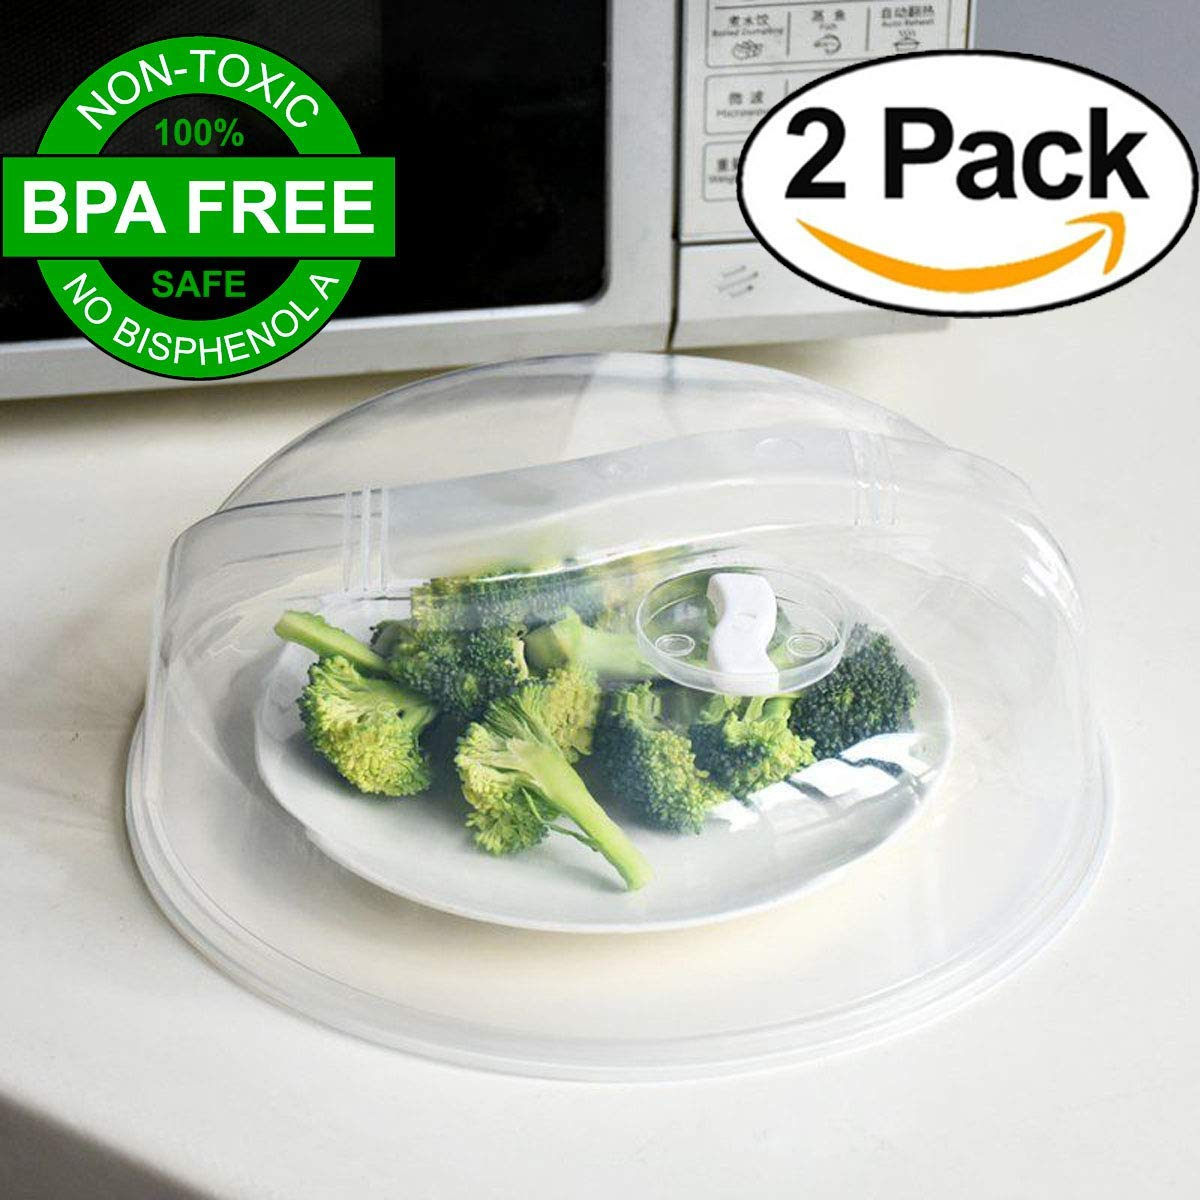 Microwave Plate Cover [BPA FREE] 2 Pack (10.5'') - Crystal Clear, Premium Quality Microwave Food Dish Cover Plate Steam Vent Splatter Lid By XERUS